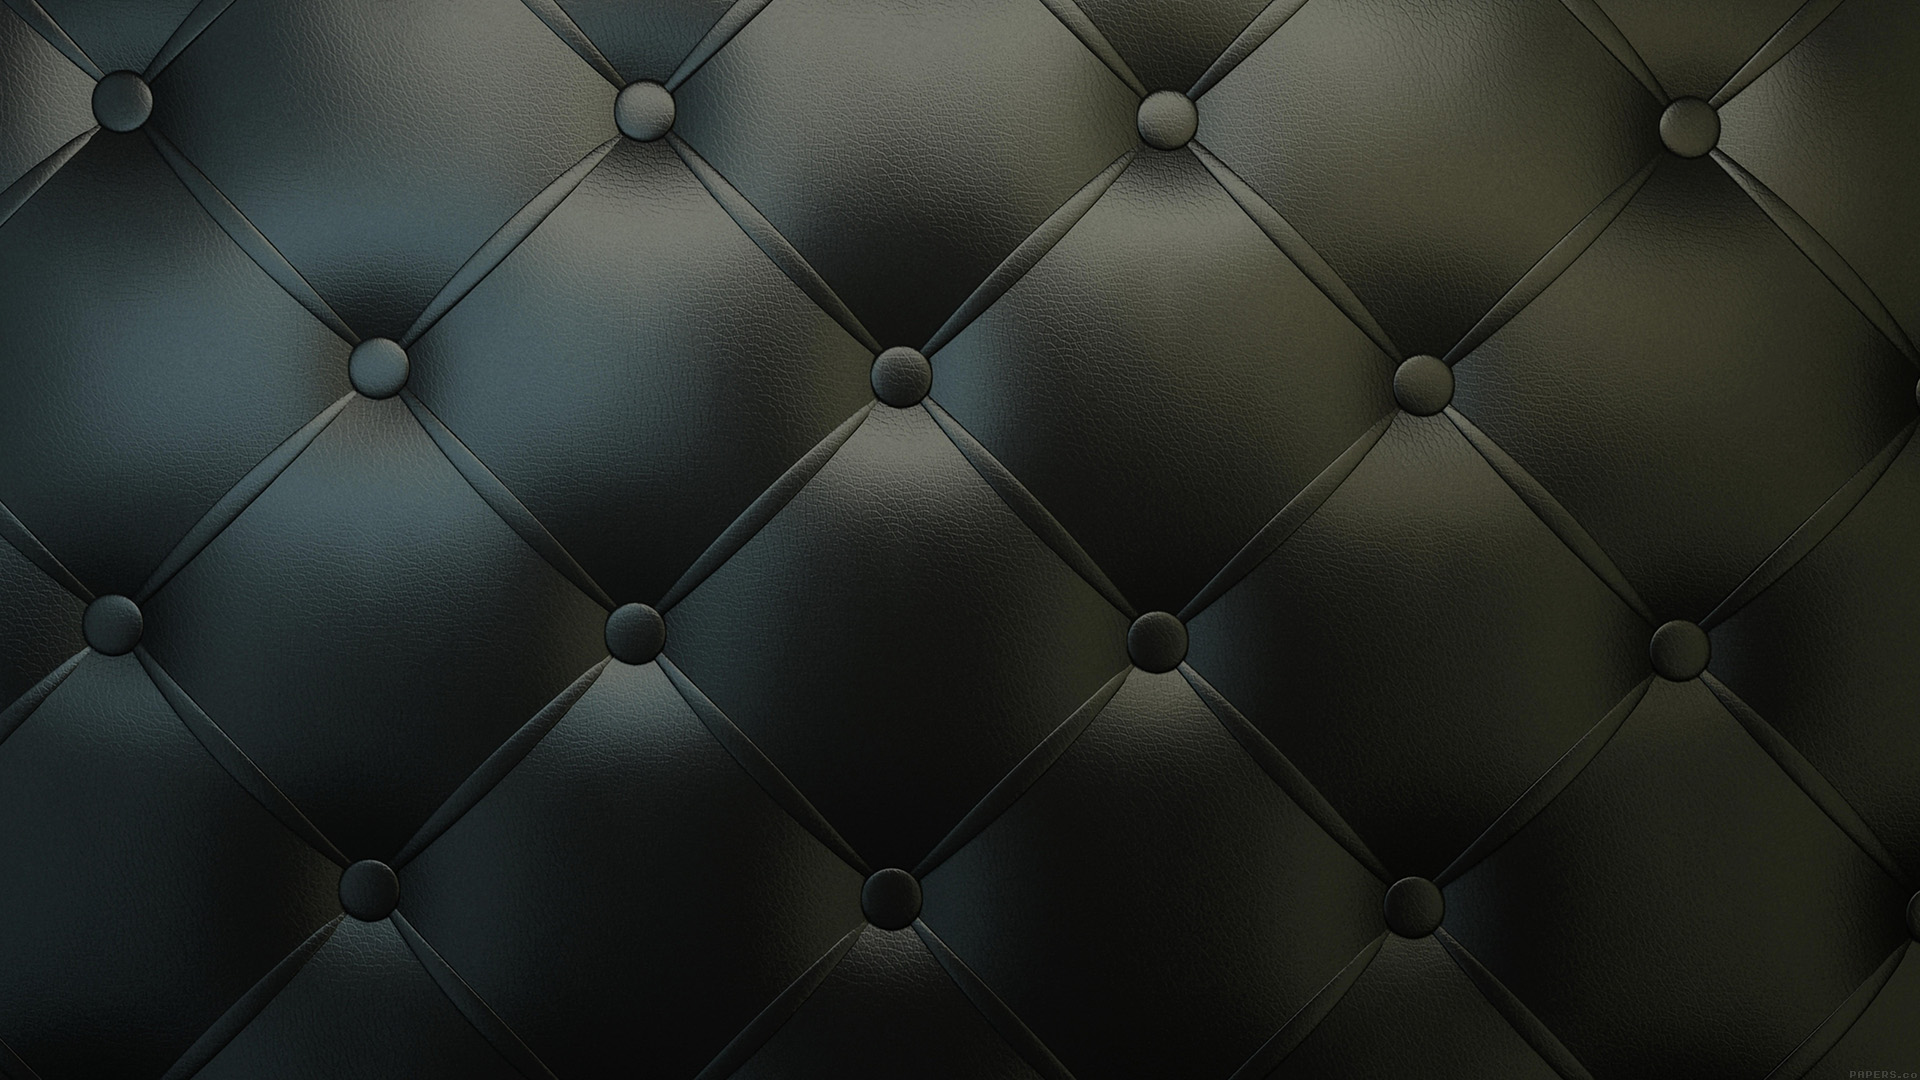 vf48-sofa-dark-texture-pattern - Papers.co